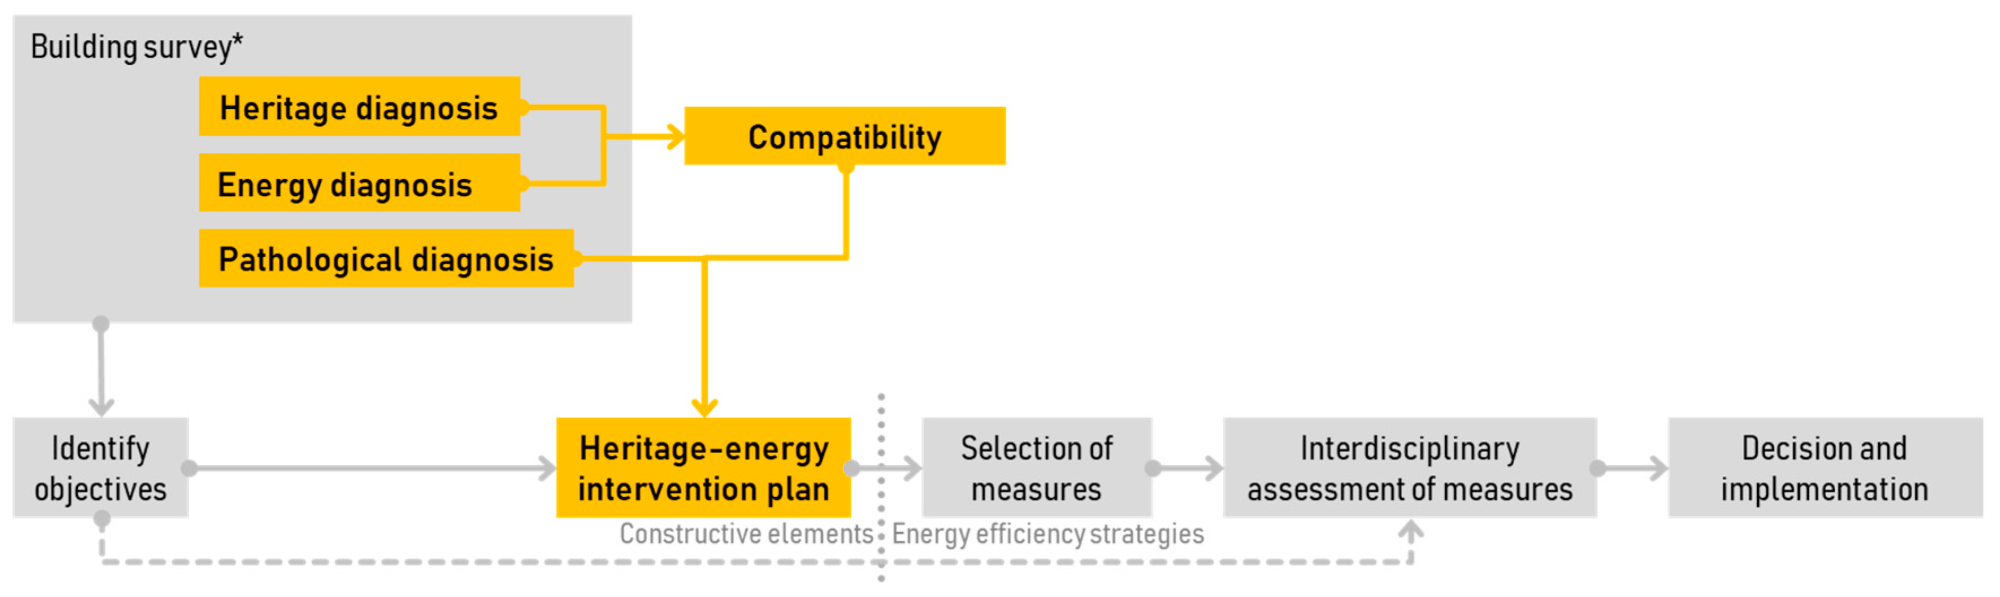 hight resolution of sustainability free full text reconciling energy and heritagebuilding retrofit diagram 11